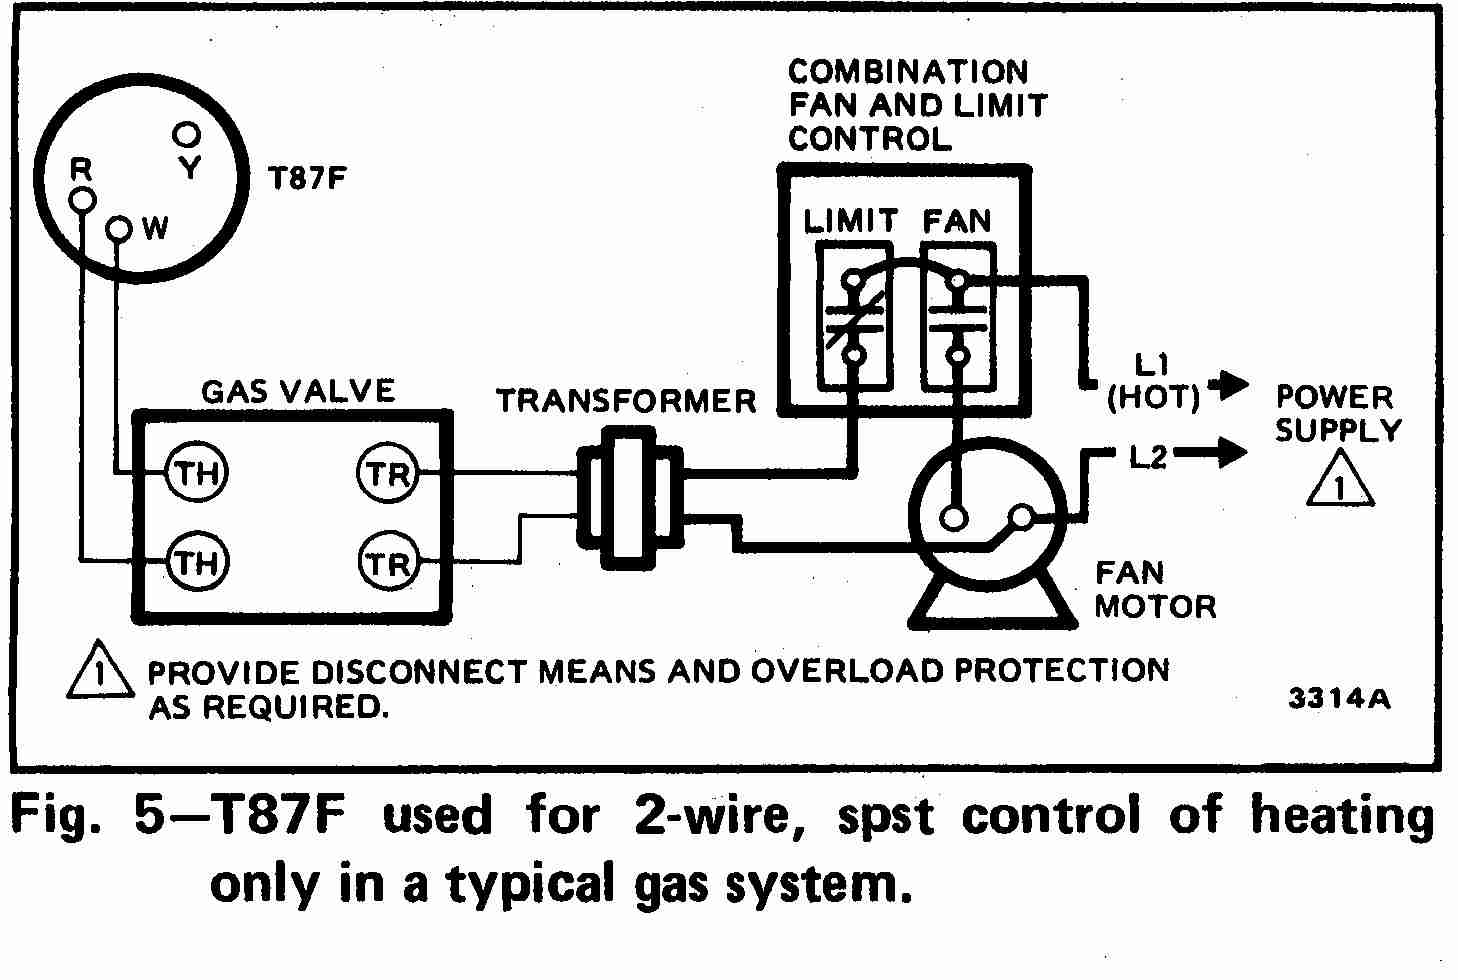 534965 Wiring Diagram Junction Box Near Panel further Tpi Wiring Diagram 3 Phase Electric Heater further 220 Volt Electric Furnace Wiring furthermore Double Pole Thermostat Wiring Diagram additionally Warmlyyours Non Program Thermostat Th114 Af Ga. on electric baseboard heaters with thermostat